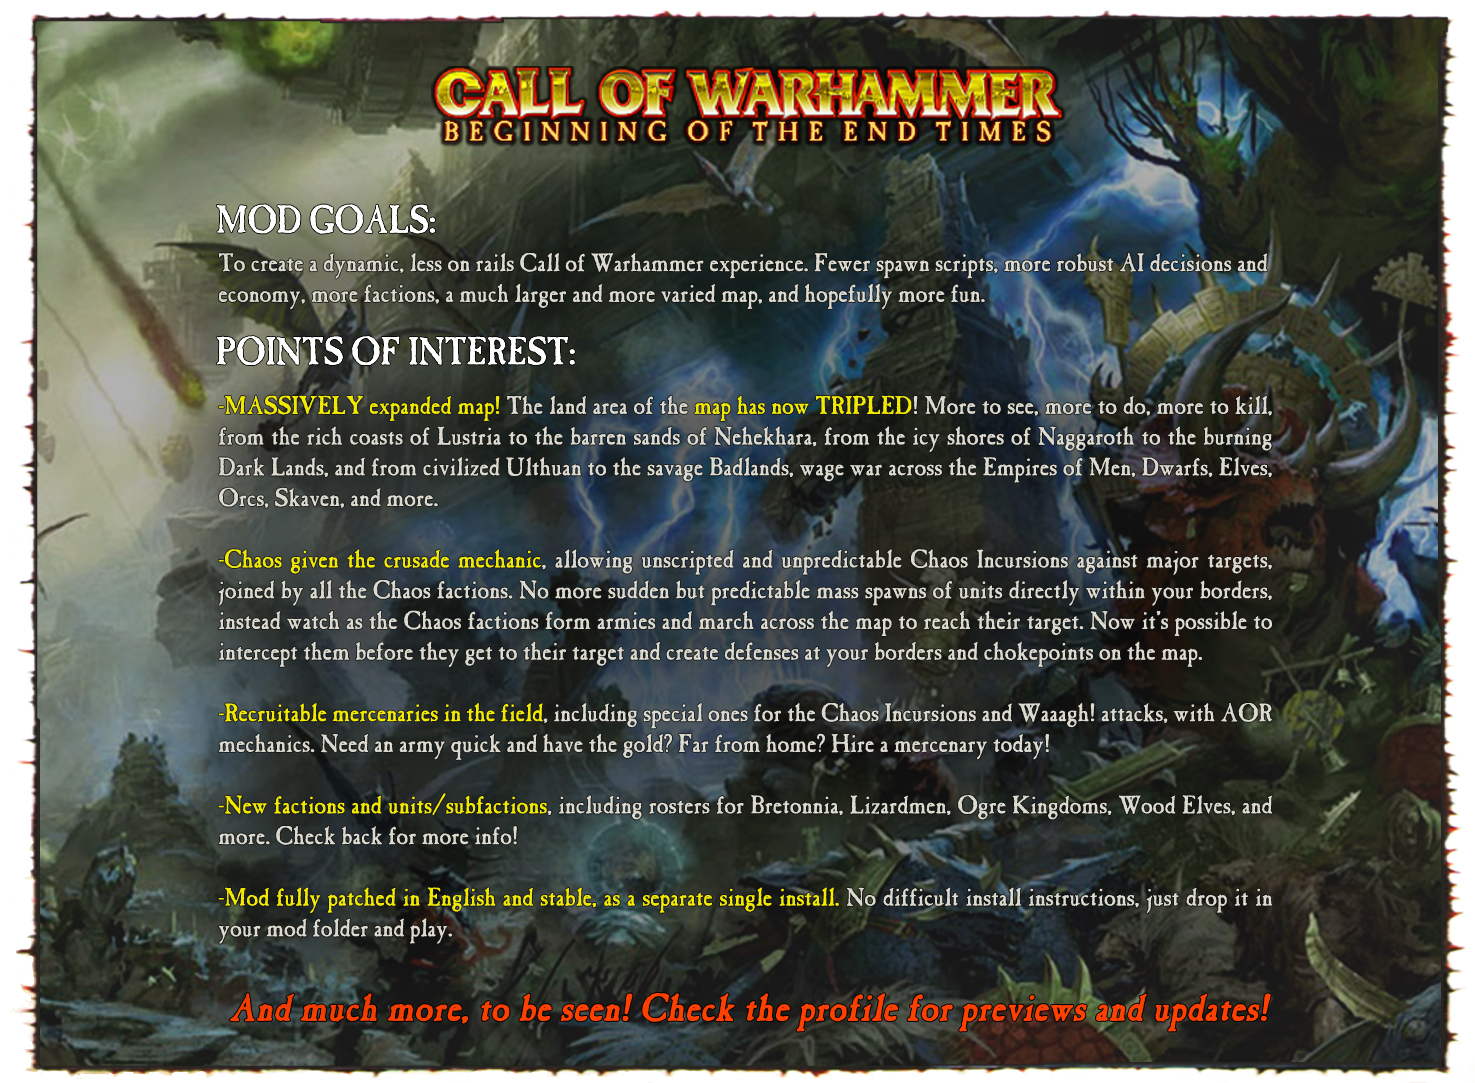 Call of Warhammer: Beginning of The End Times mod for